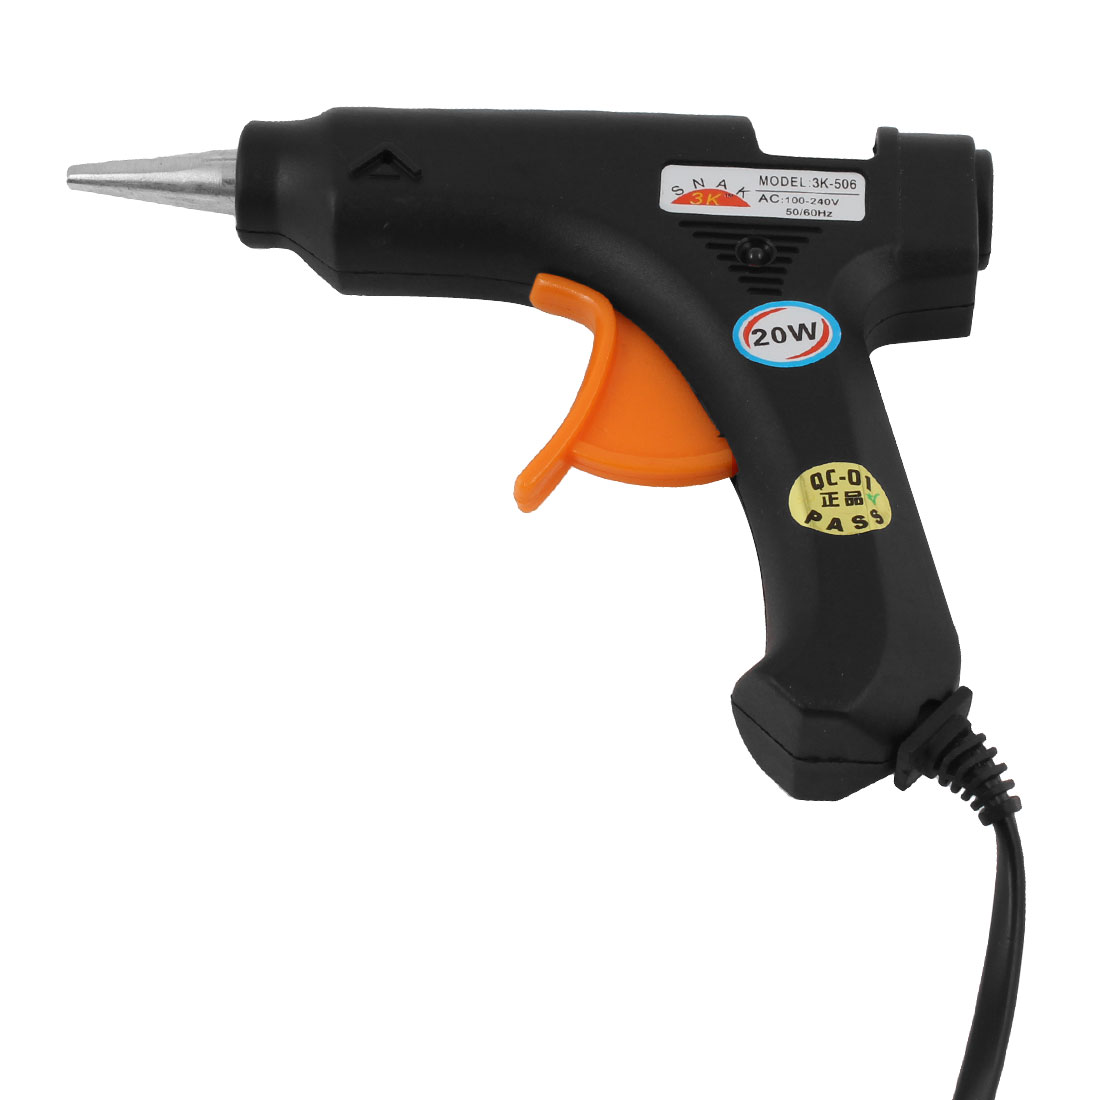 1.24M Cable AC 100-240V 20W Heating Melt Electric Trigger Glue Gun US Plug